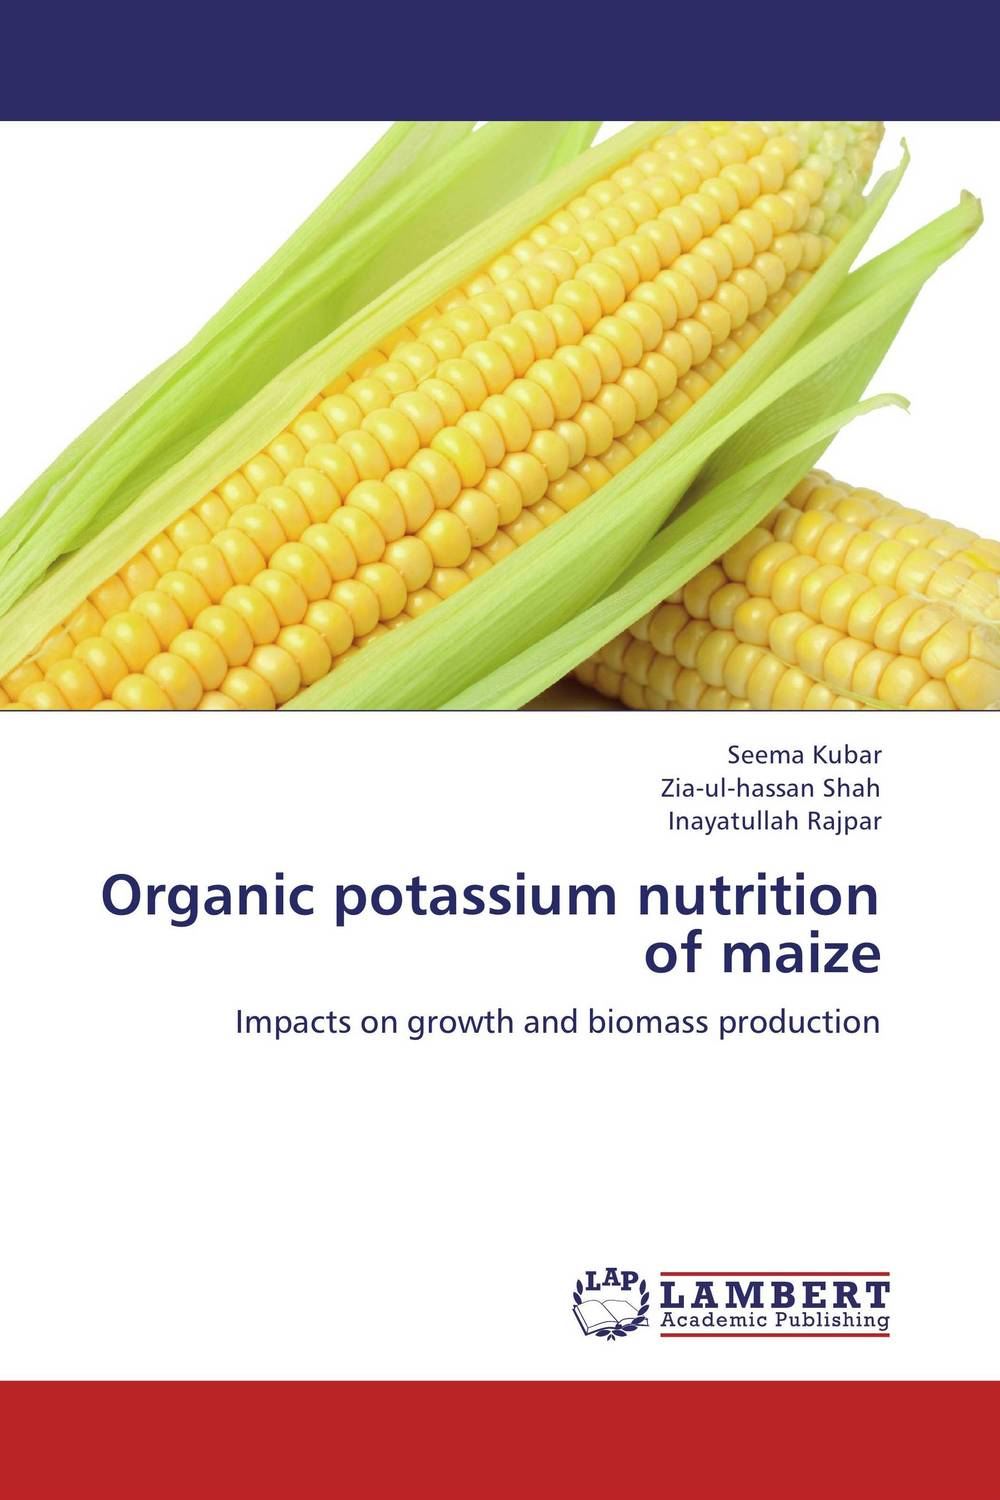 Organic potassium nutrition of maize